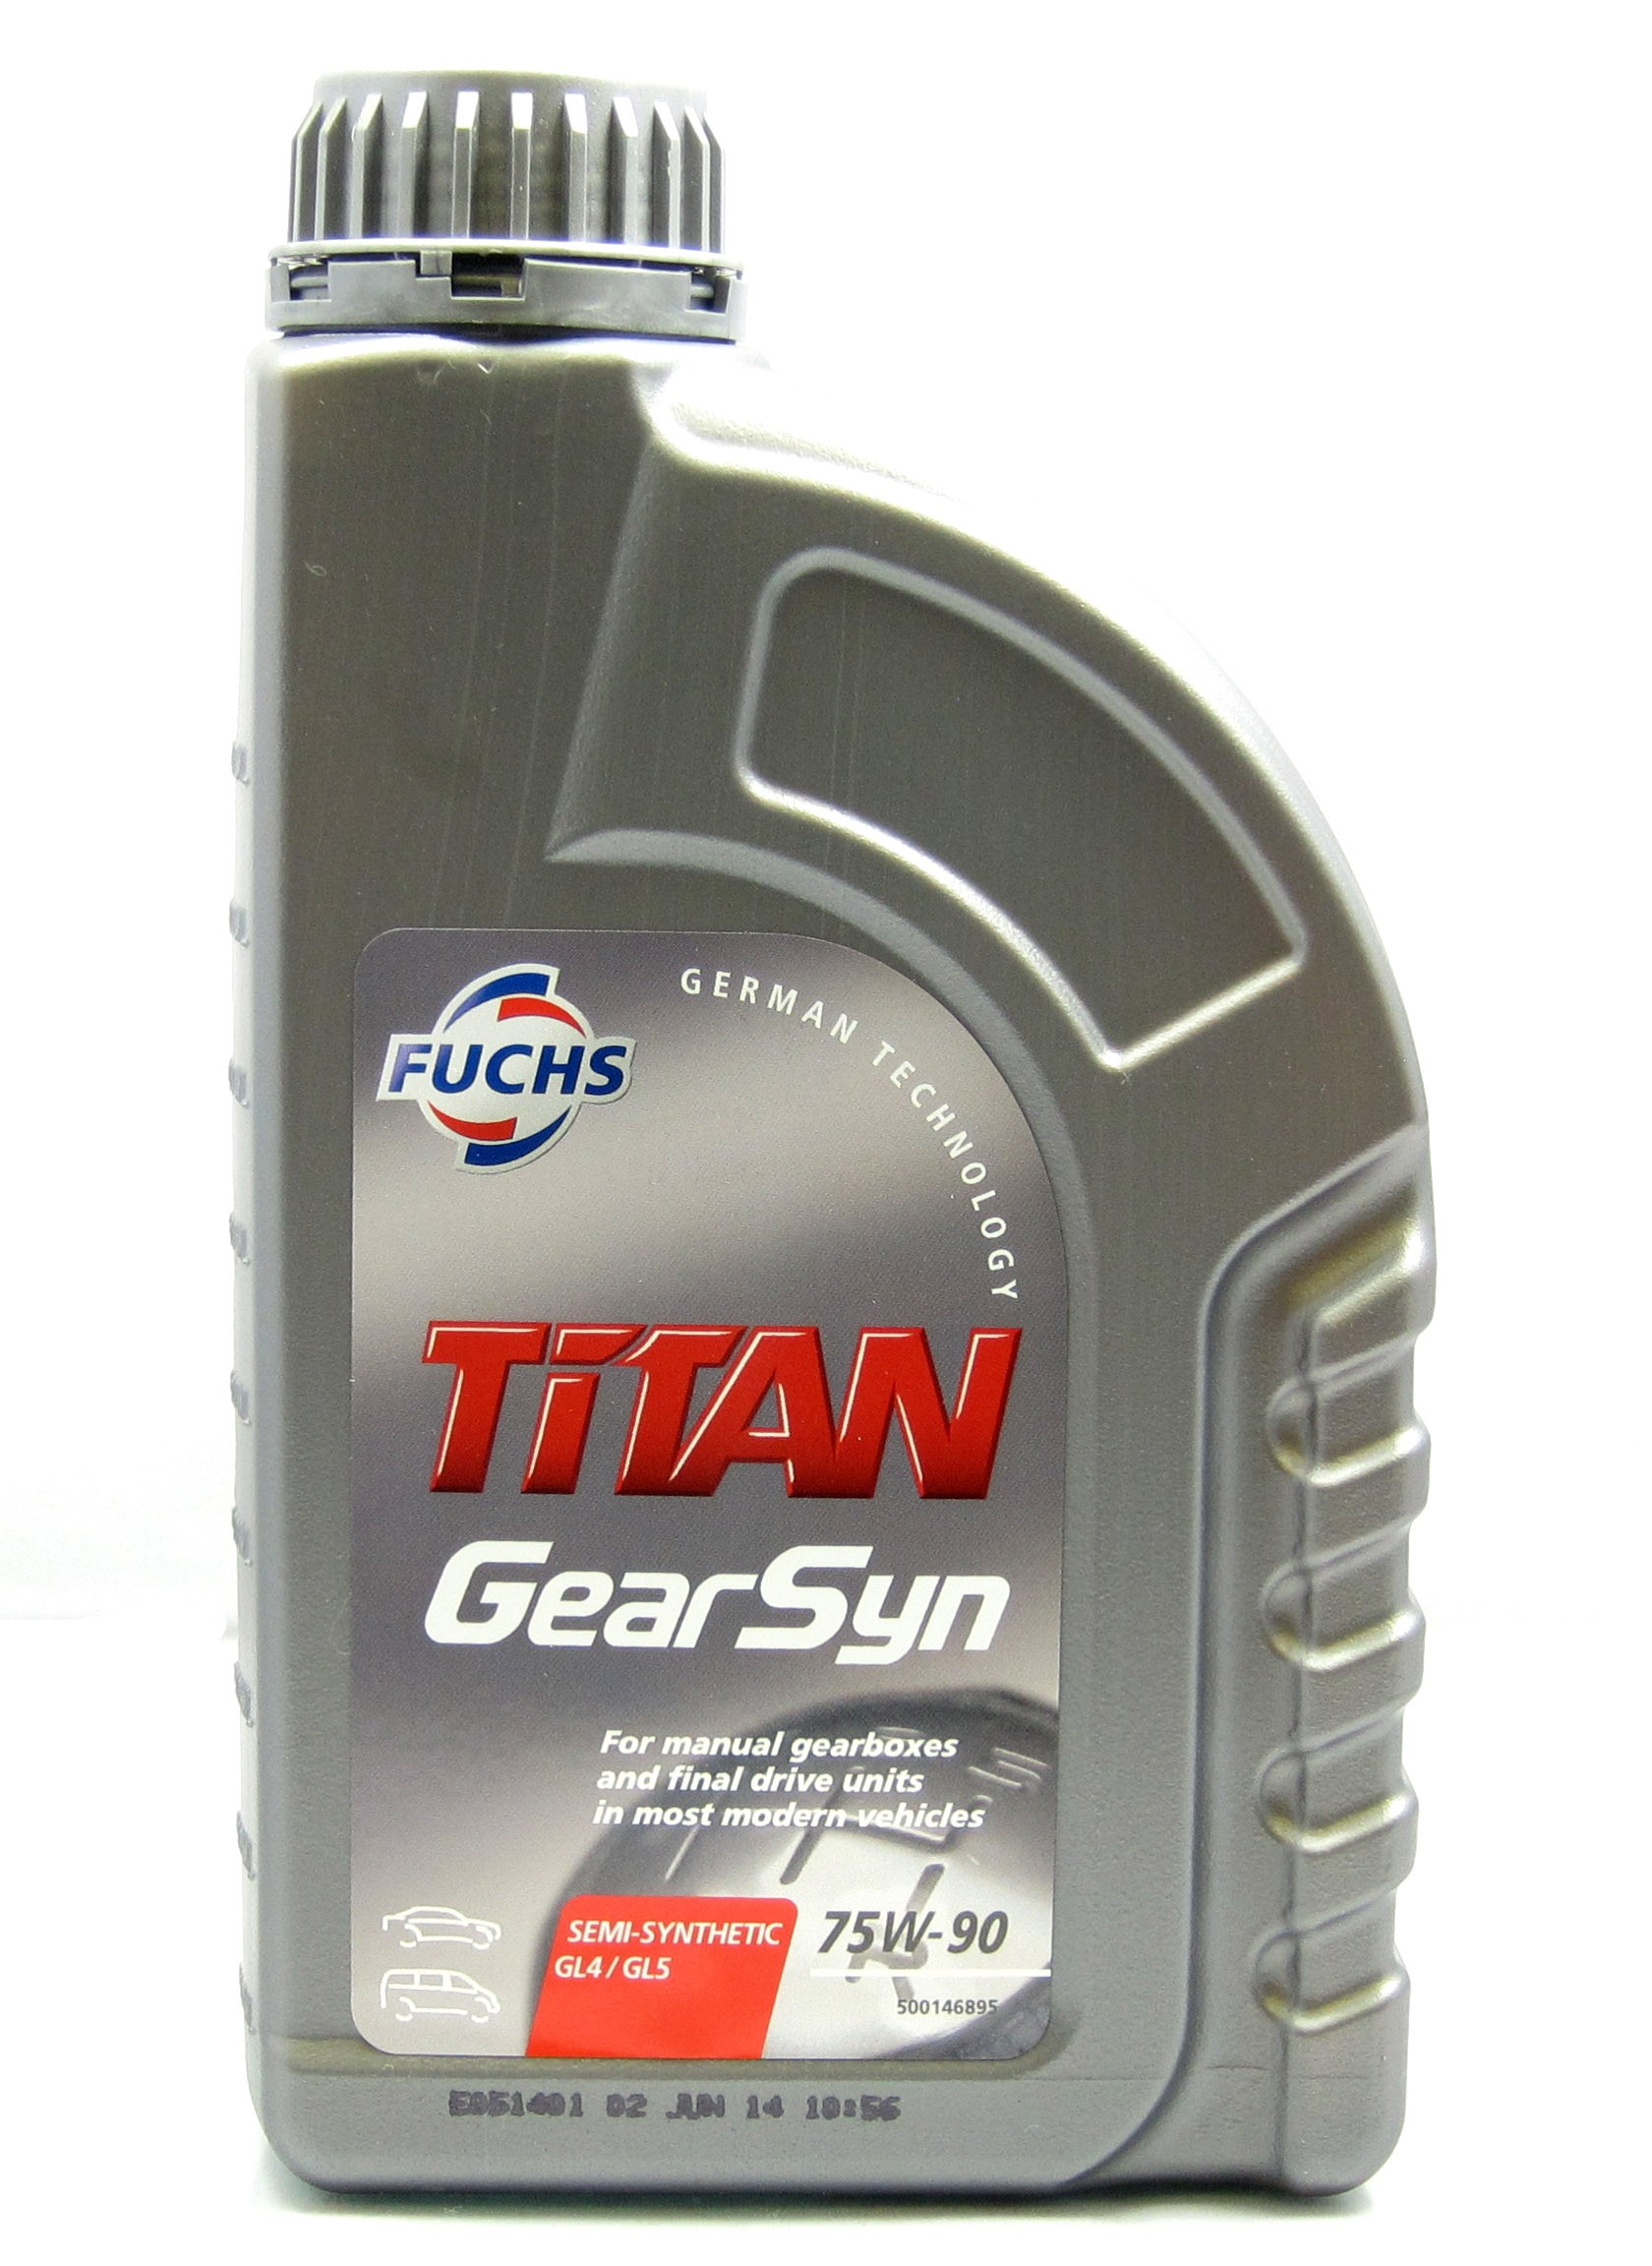 Fuchs Titan Gear Syn 75w 90 Semi Synthetic Manual Gearbox Oil Alfa 147 Autolusso New Romeo Parts